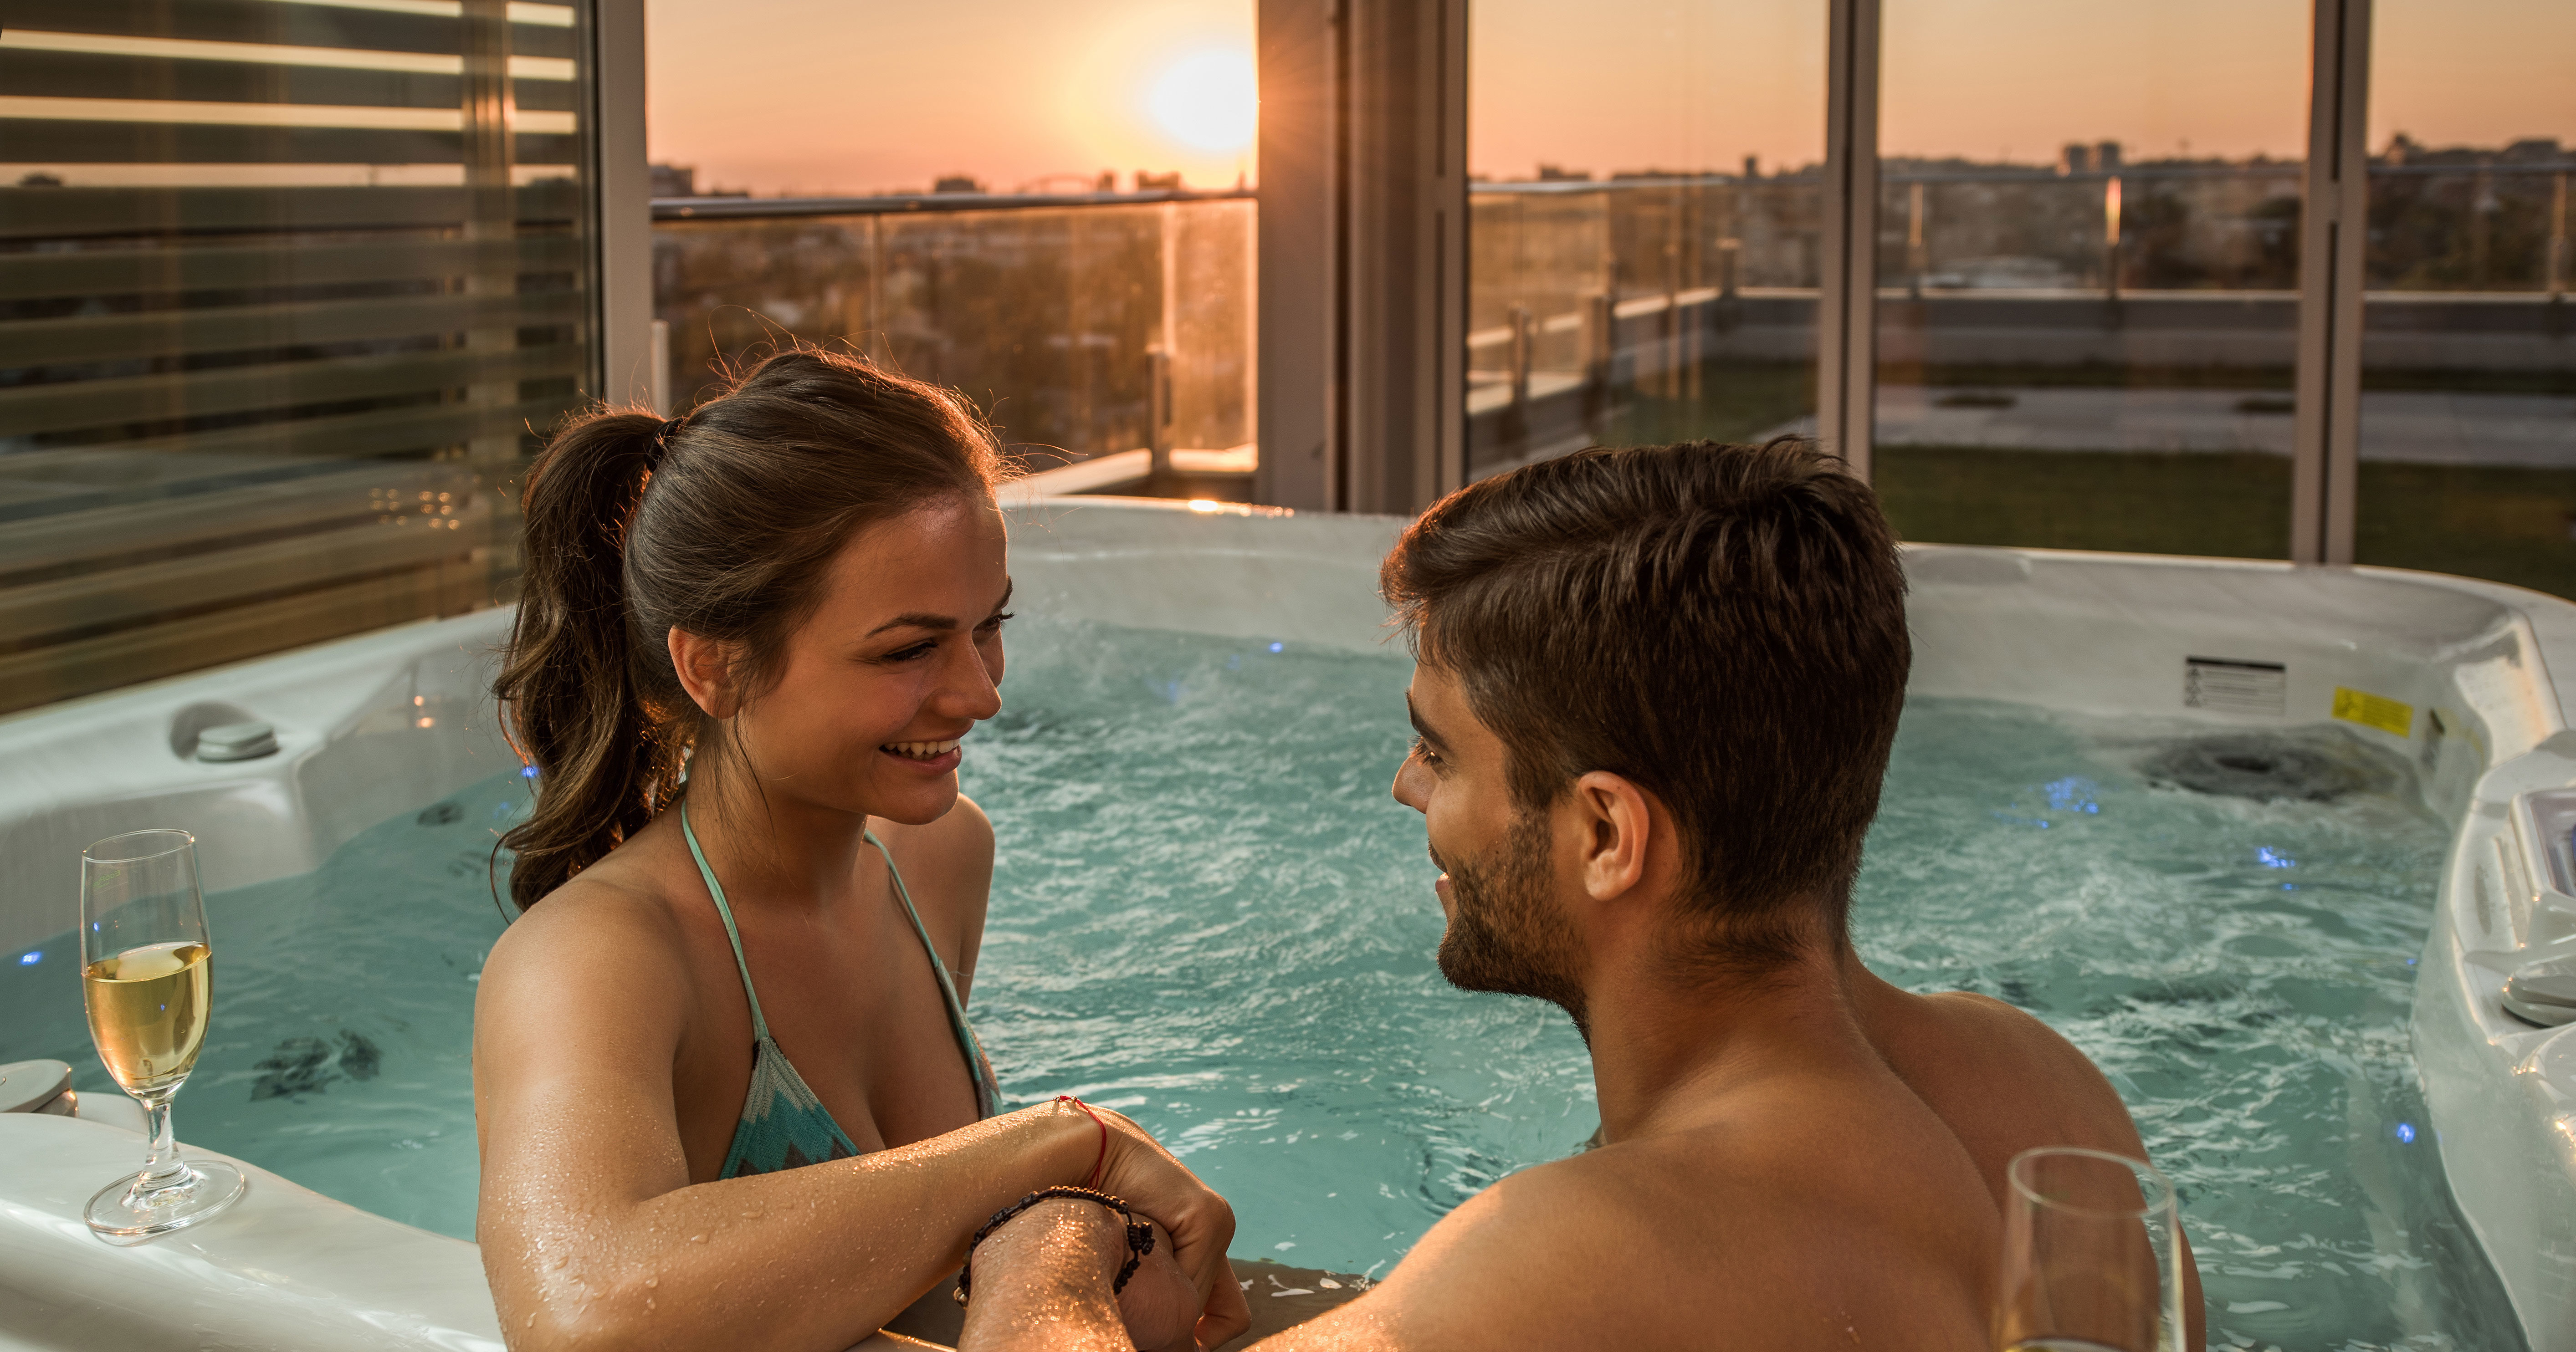 Young couple in a hot tub with nice skyline